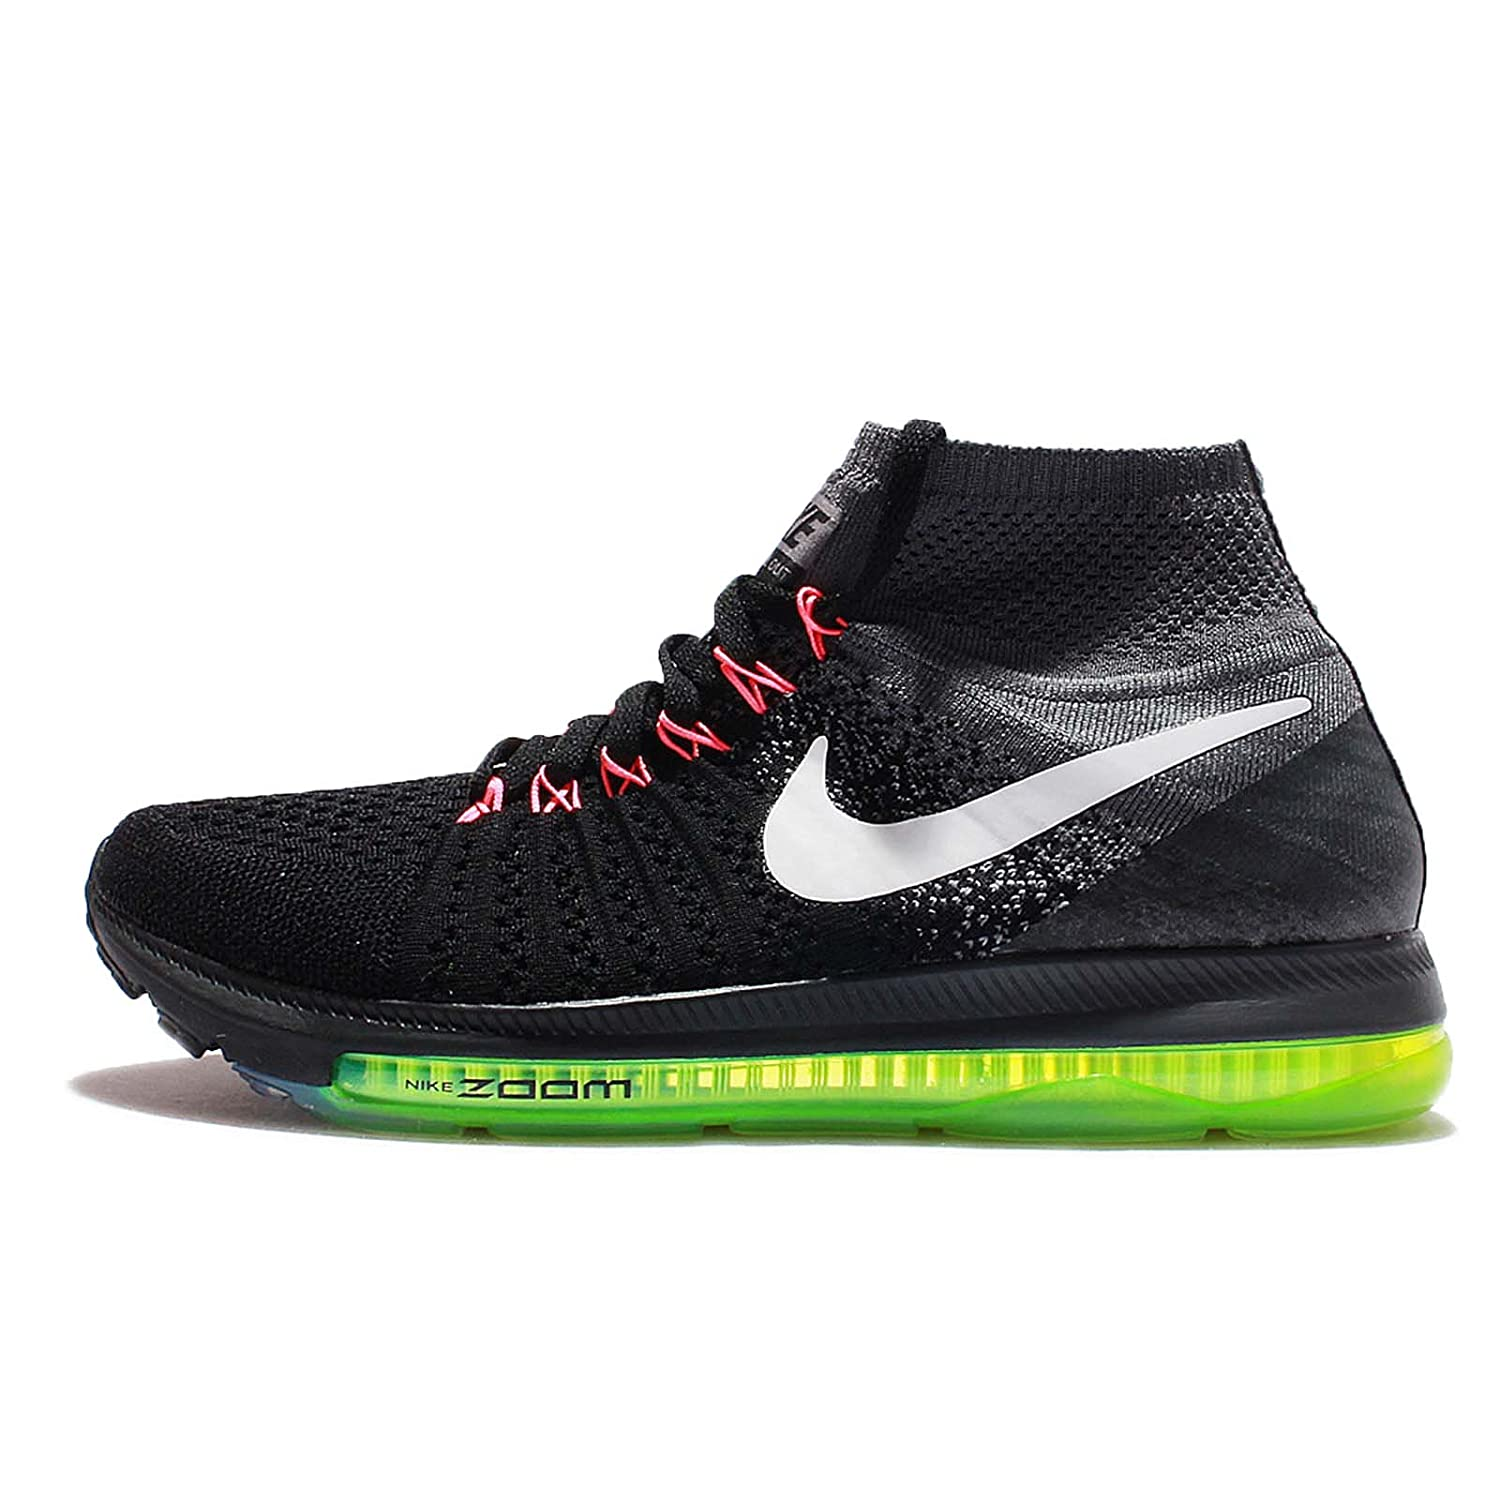 Nike Women's Zoom All Out Flyknit Running Shoes B006MZC1EK 8.5 B(M) US|Black/Cool Grey/Volt/White